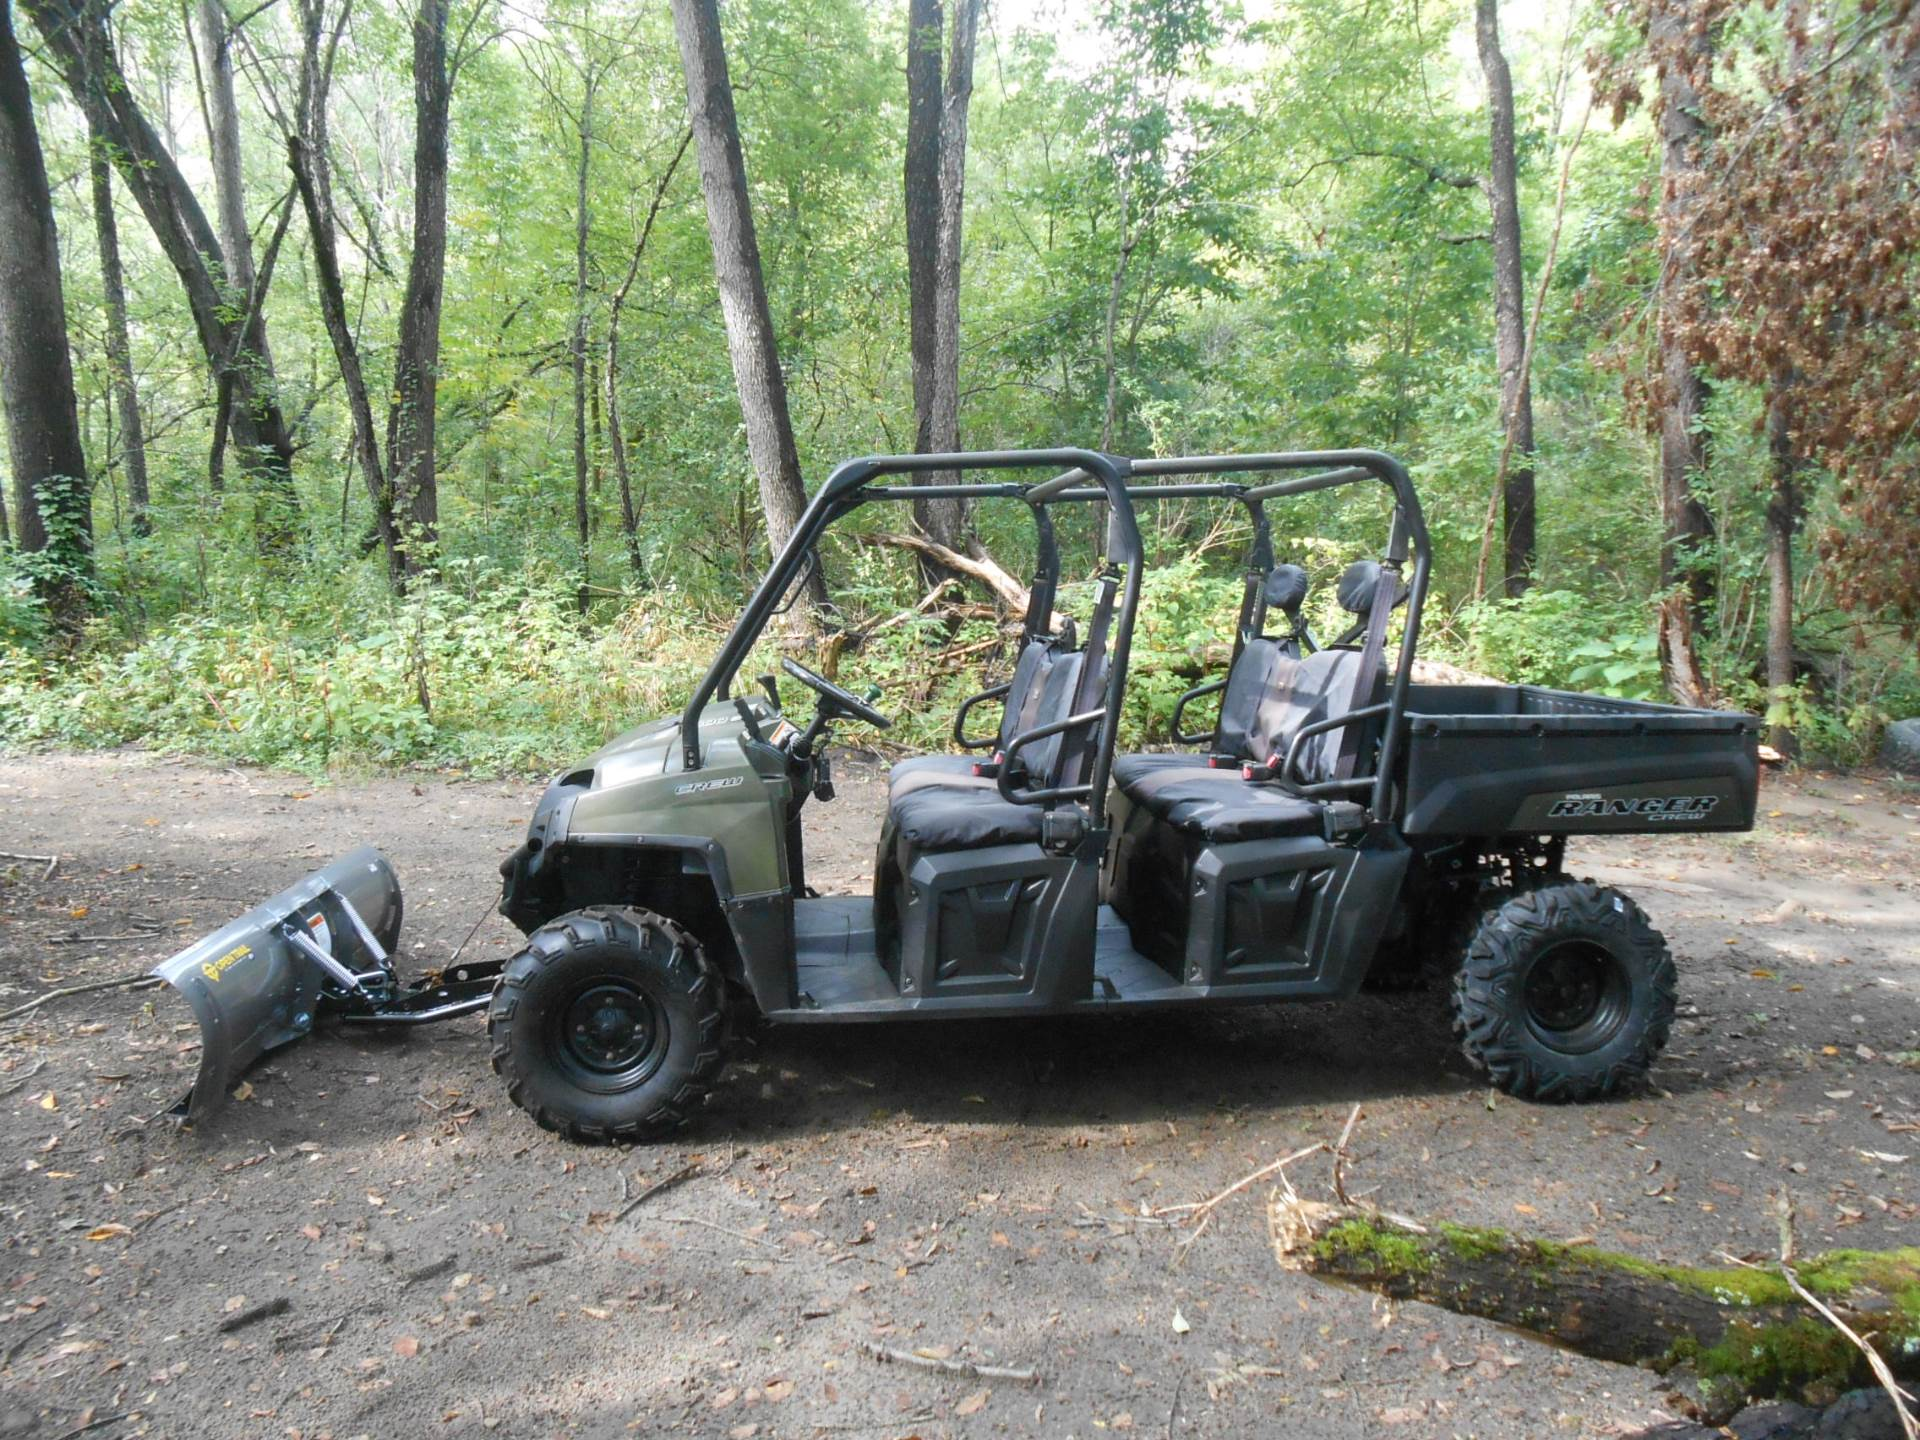 2014 Polaris Ranger Crew® 800 EFI in Howell, Michigan - Photo 3